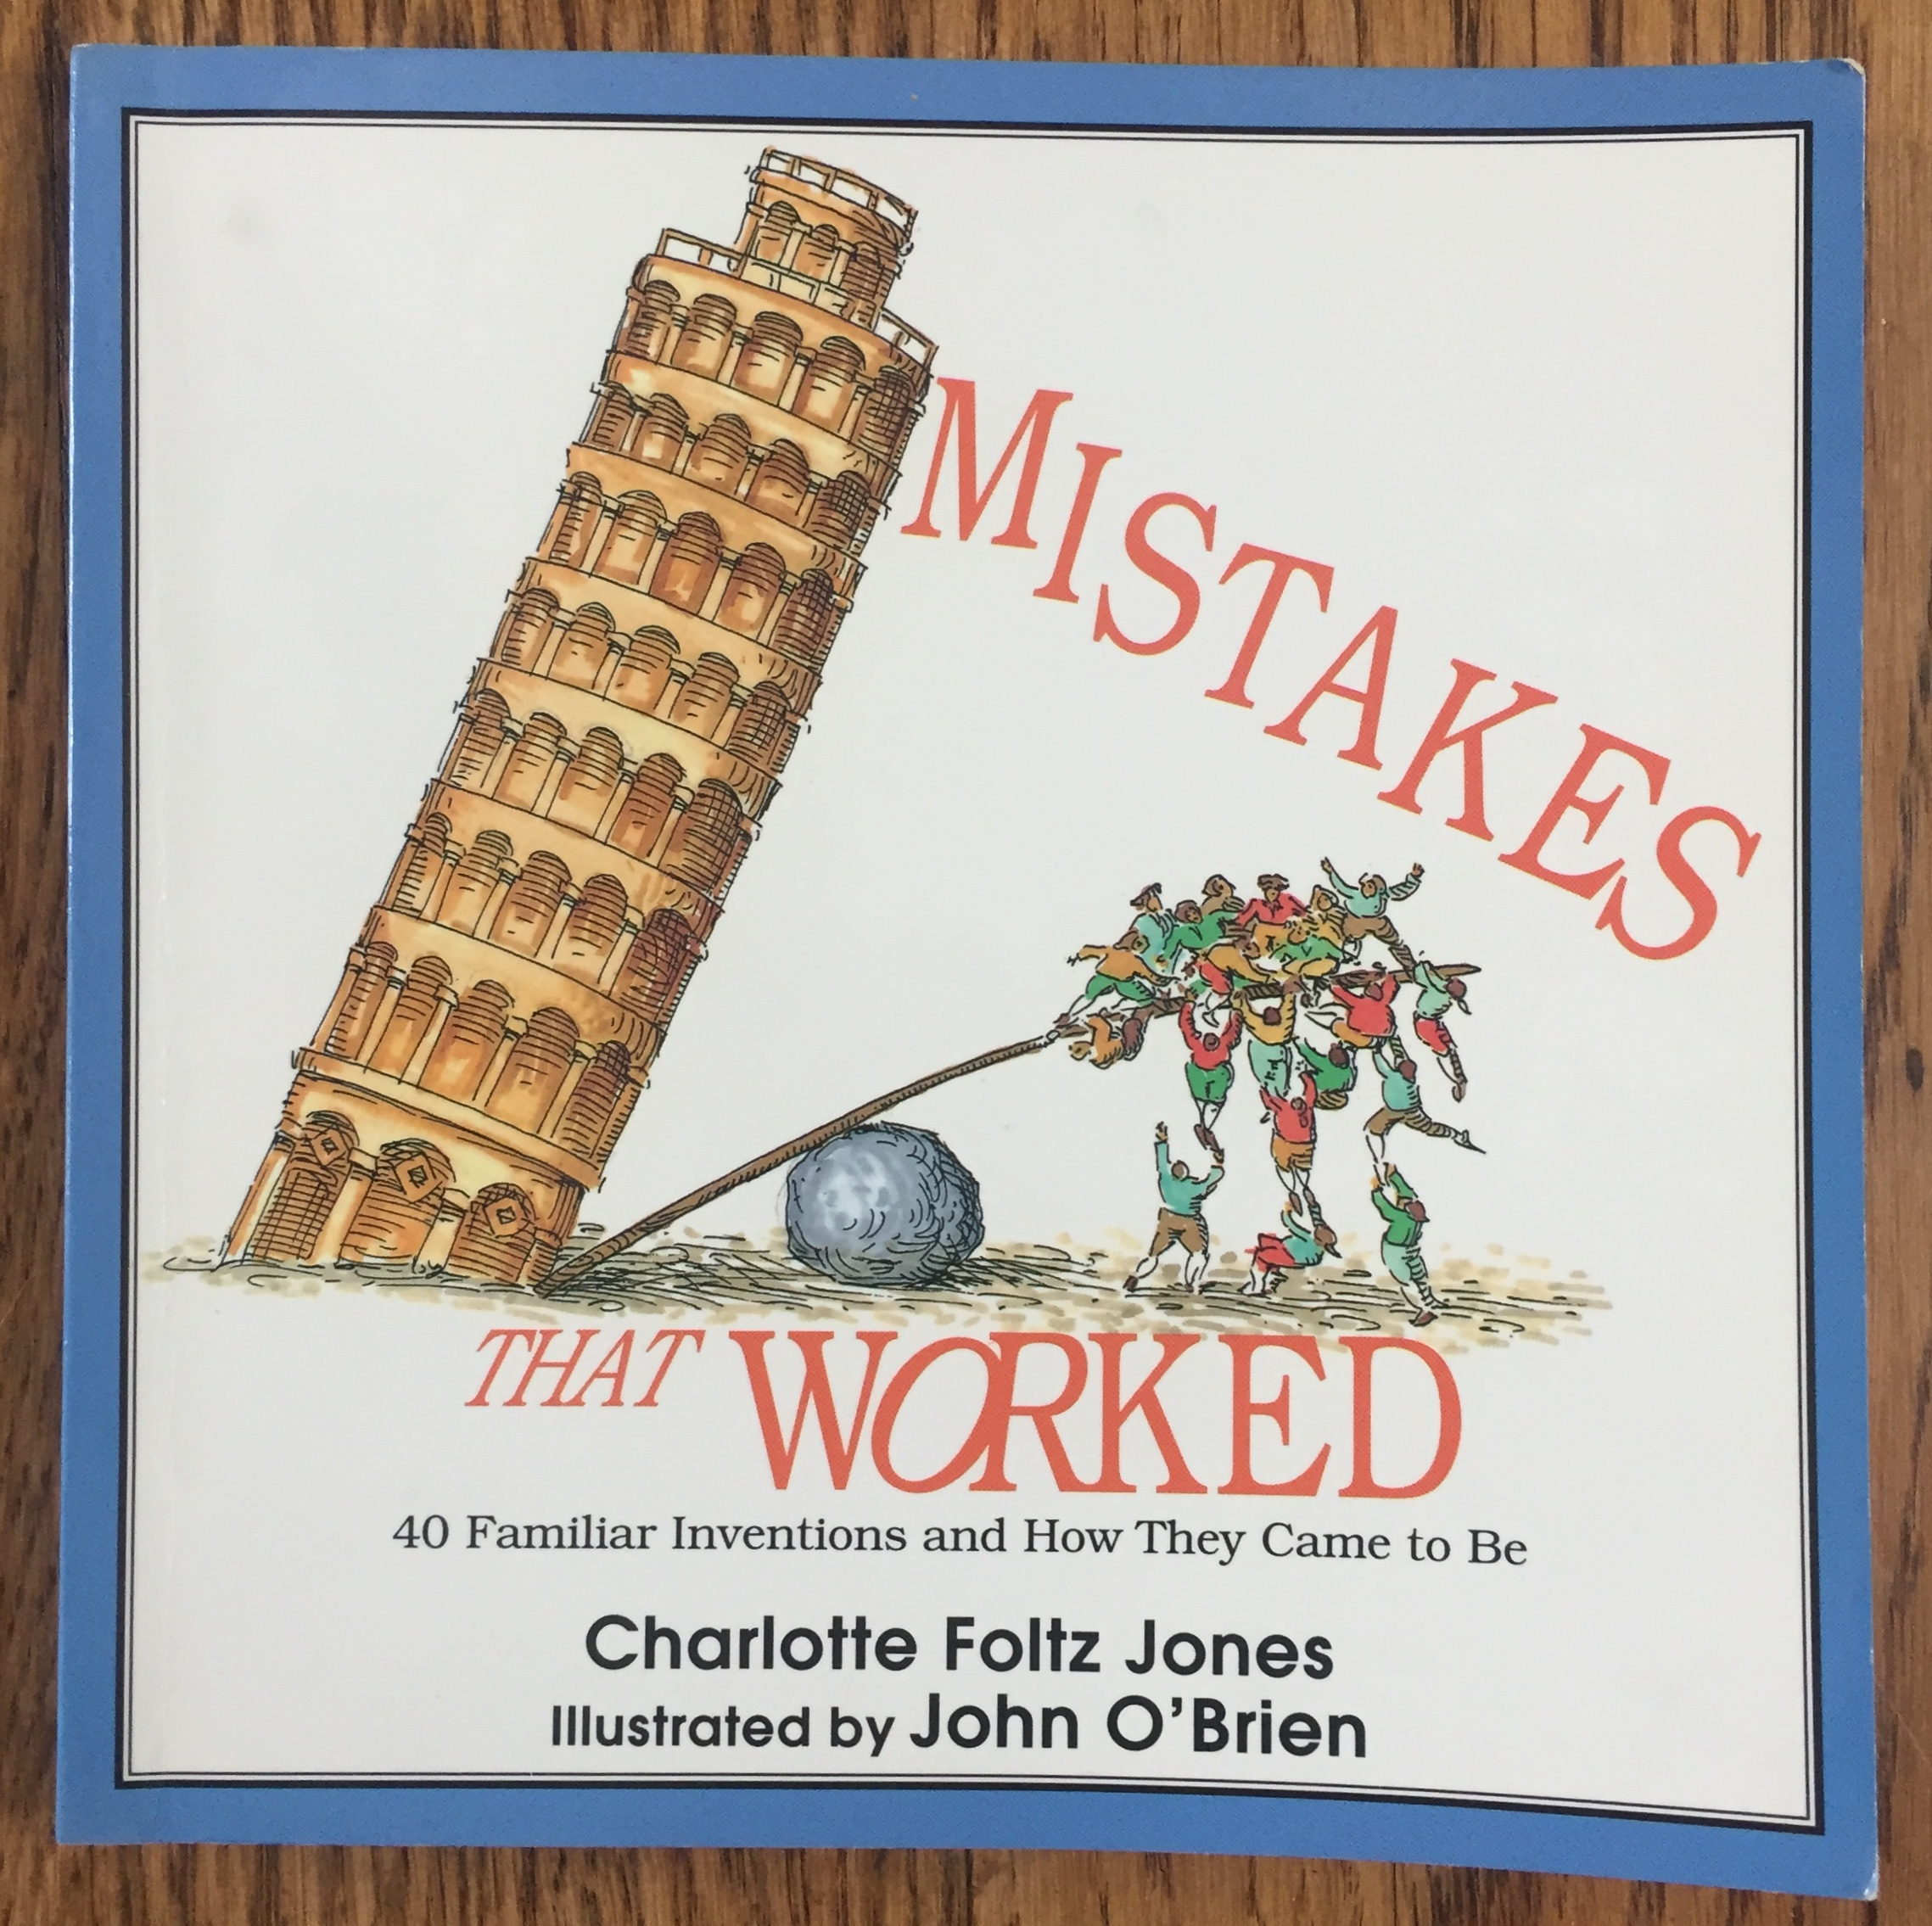 Mistakes That Worked books by Charlotte Foltz Jones